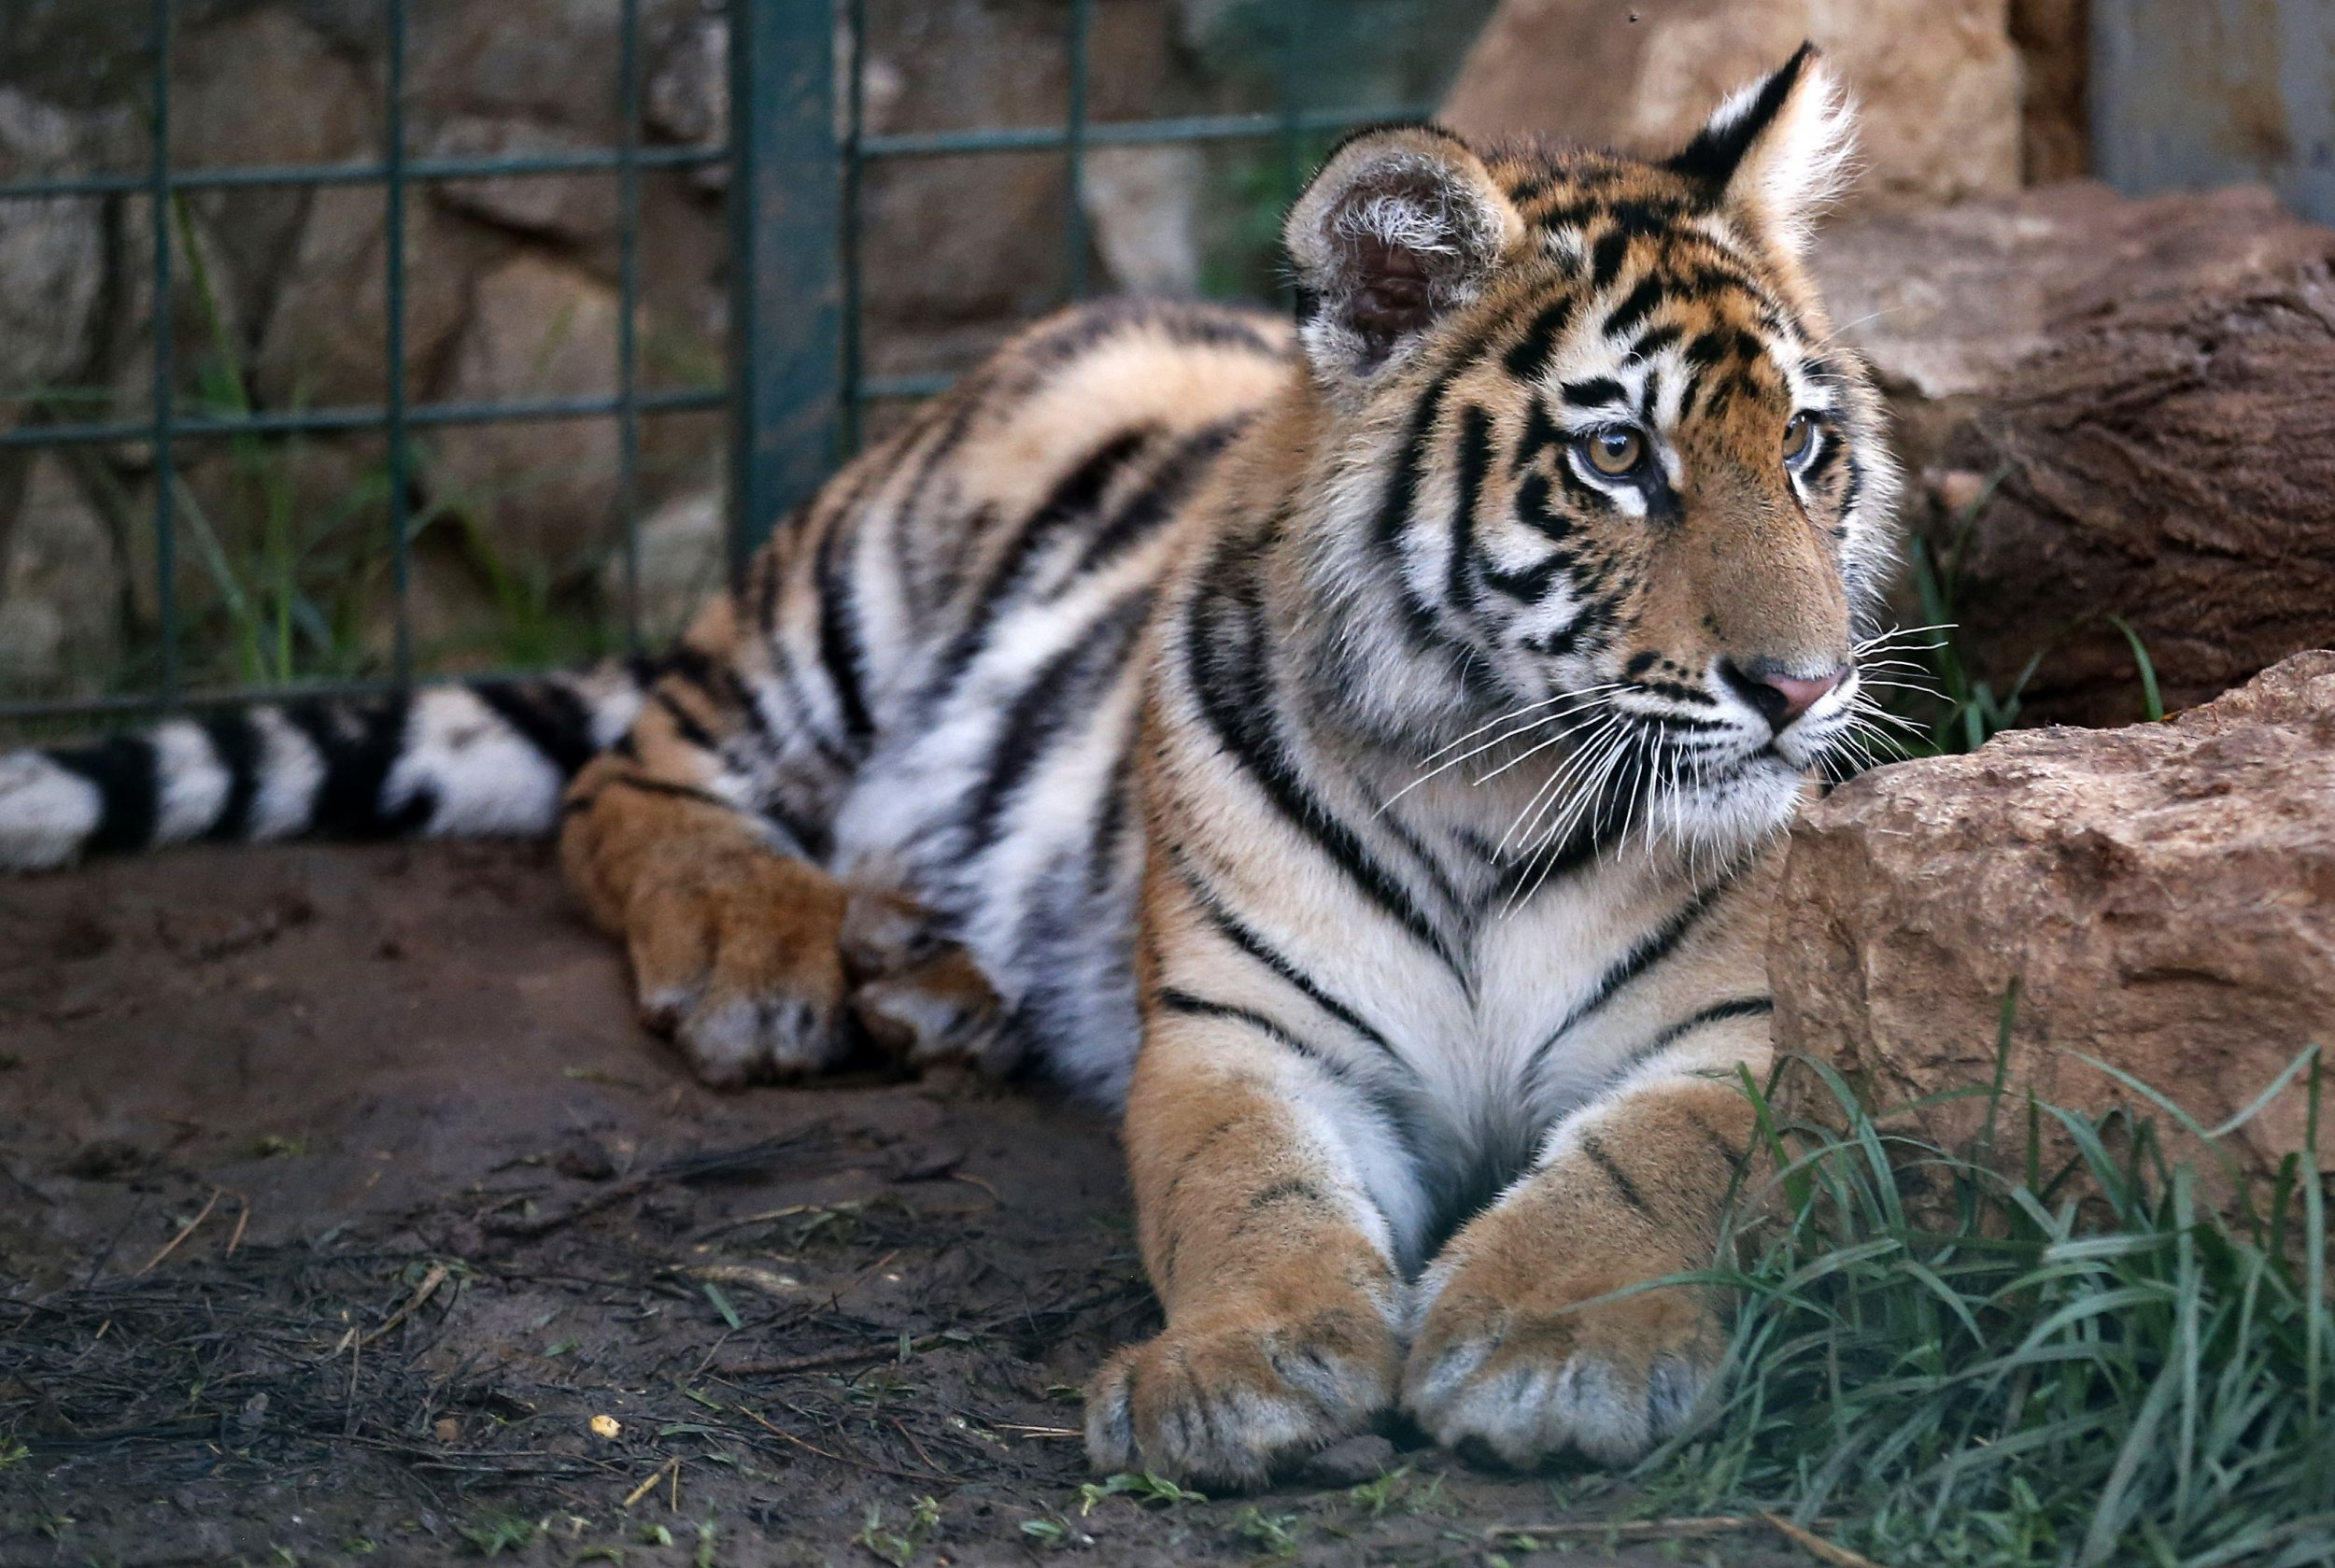 Rescued Tigers in France